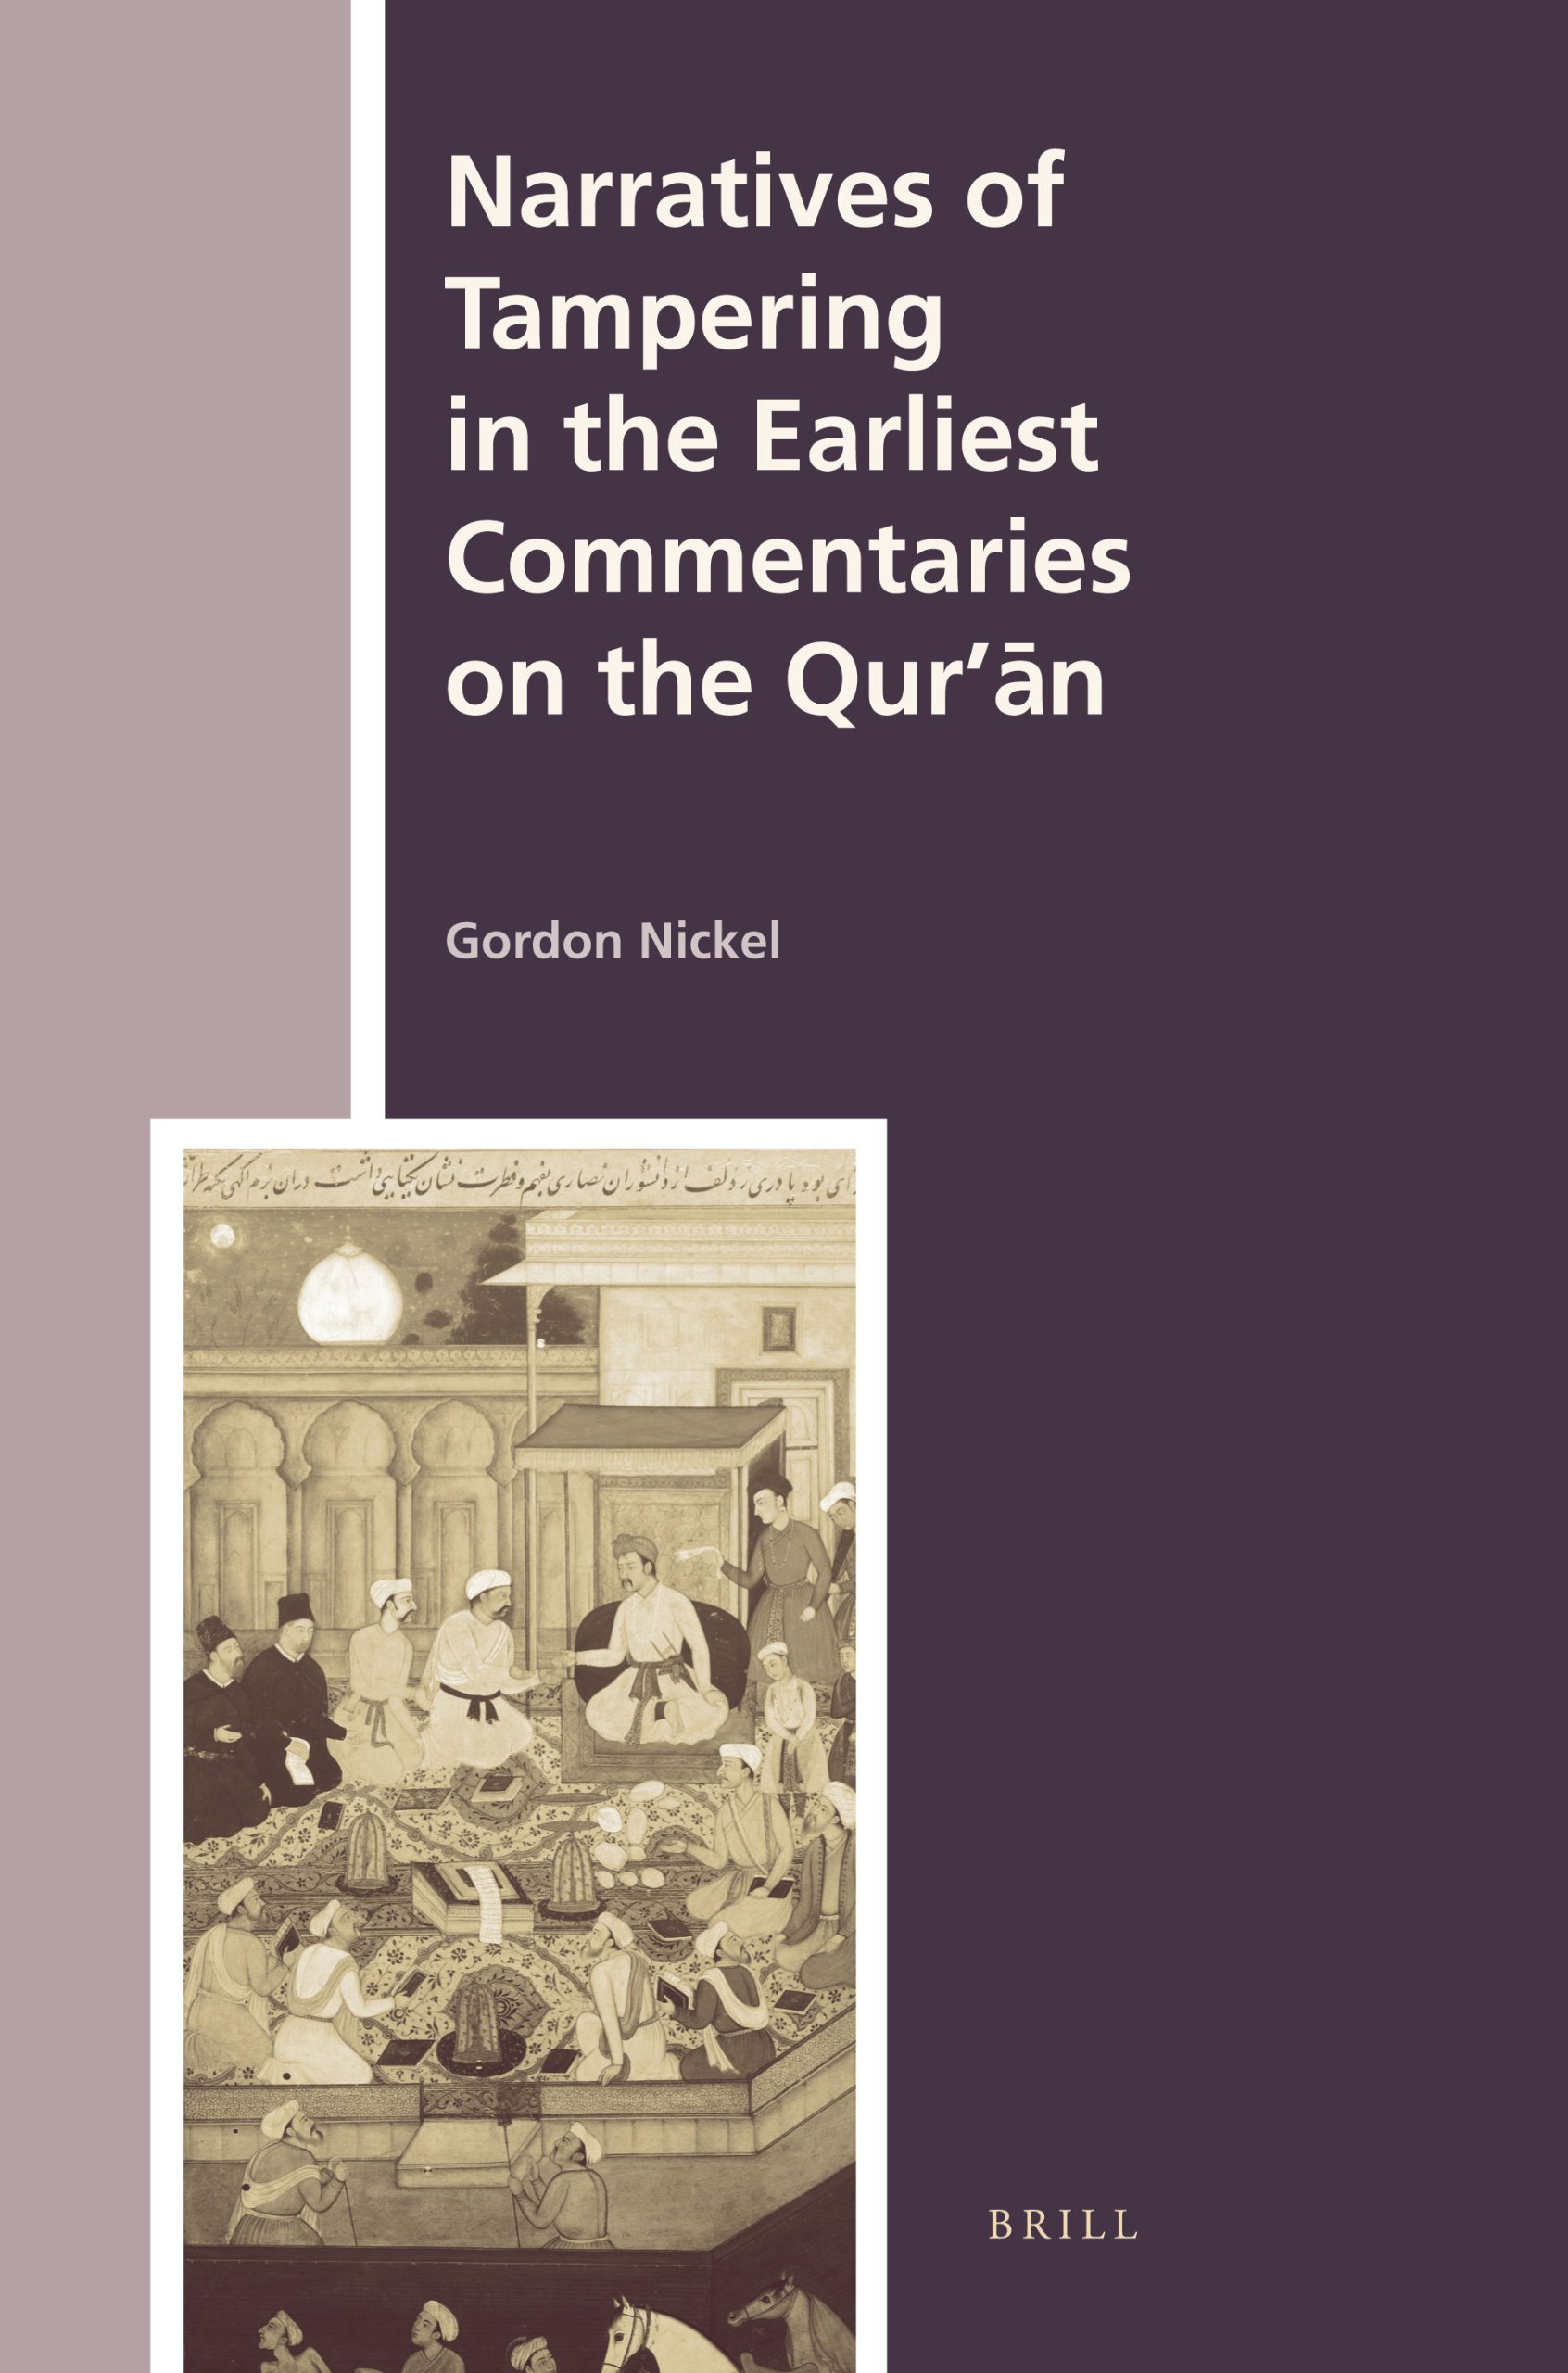 Narratives of Tampering in the Earliest Commentaries on the Qur'ān (History of Christian-Muslim Relations) by Brill